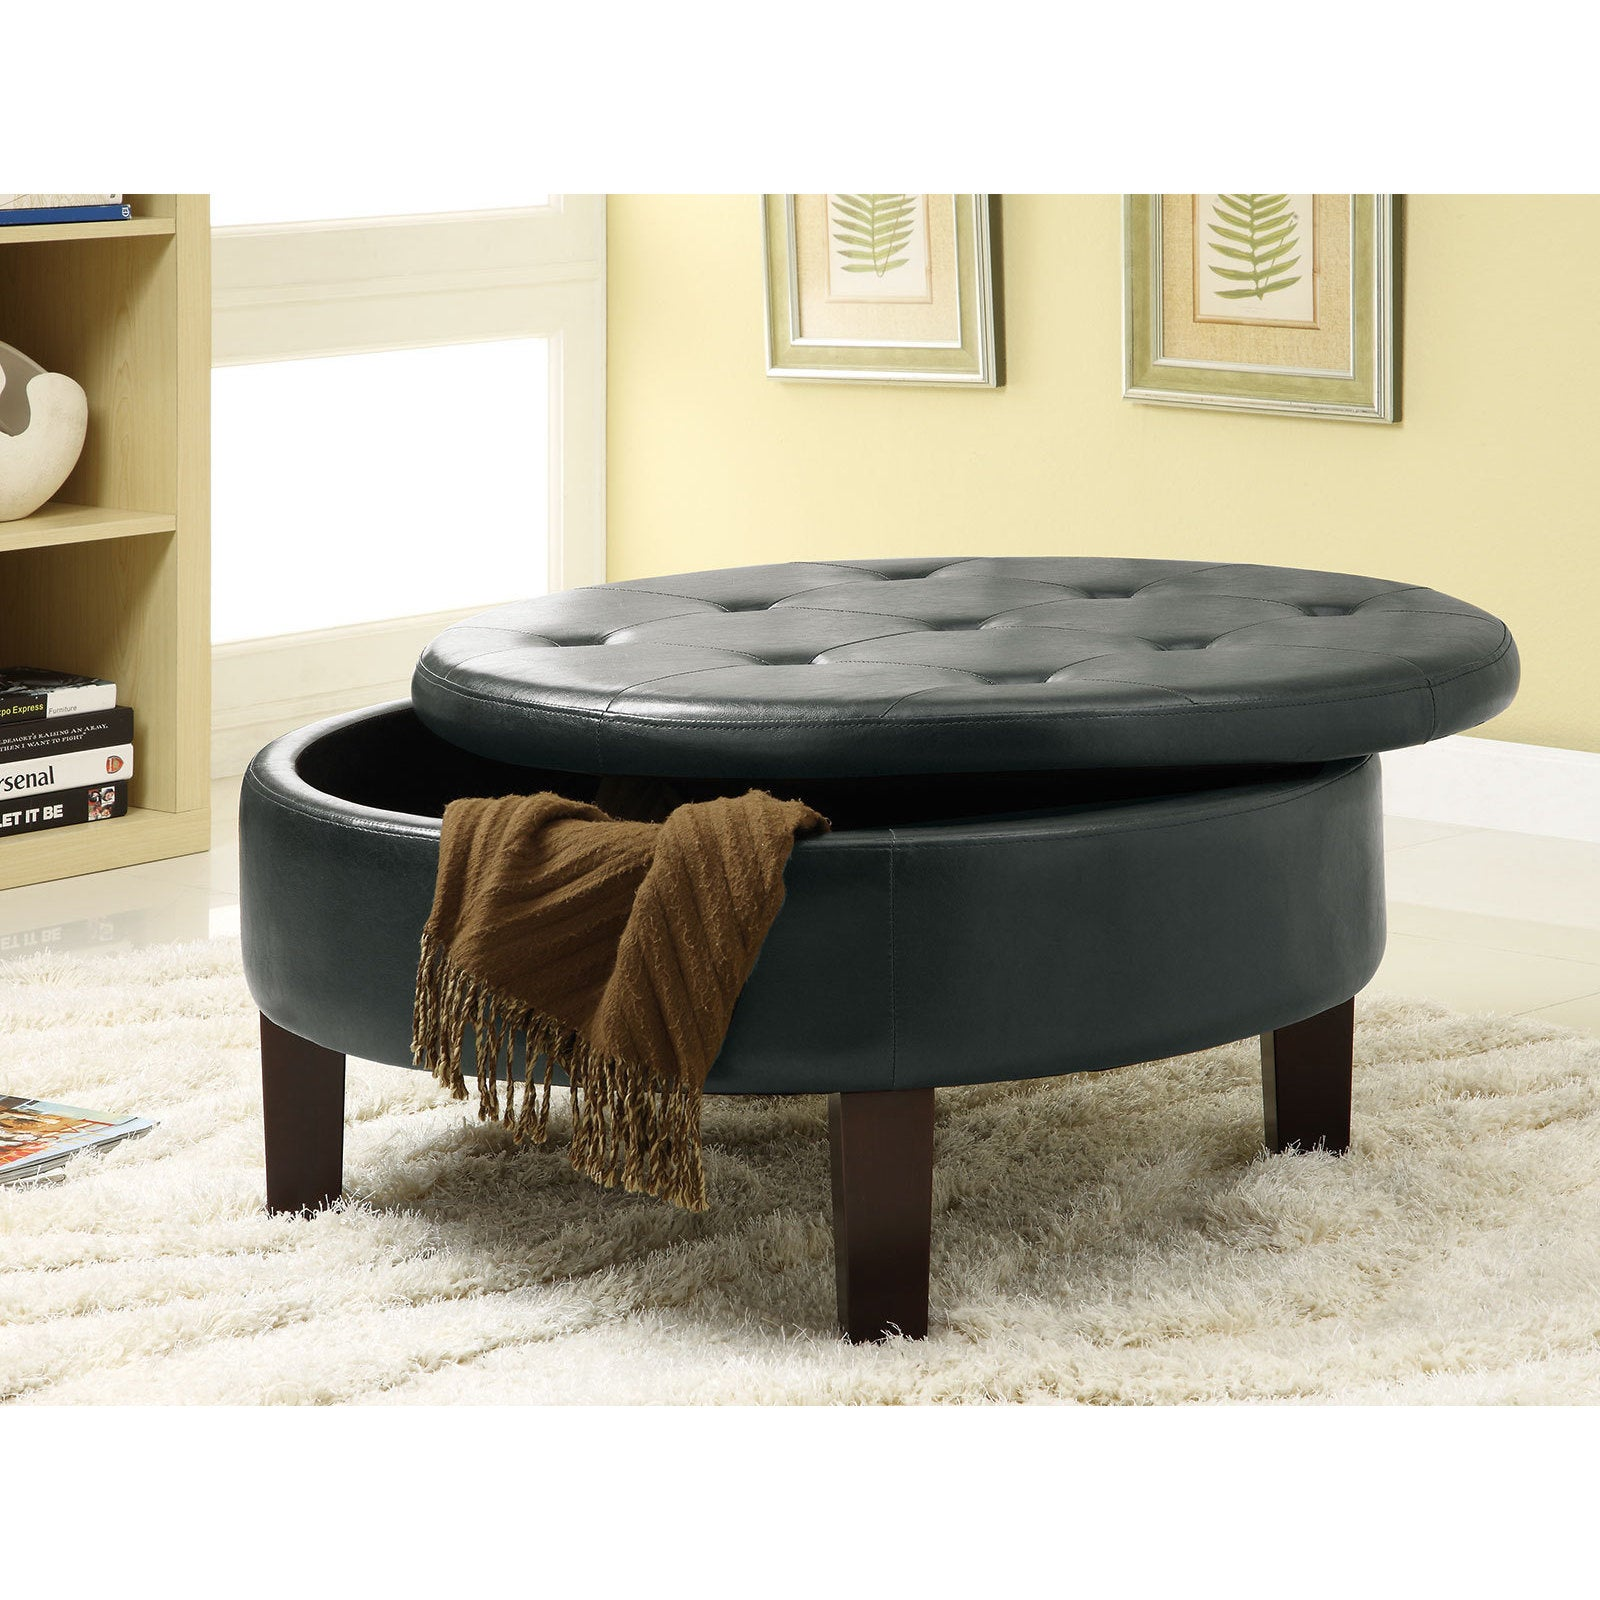 Shop copper grove jamesia tufted brown faux leather round storage ottoman free shipping today overstock com 22580928